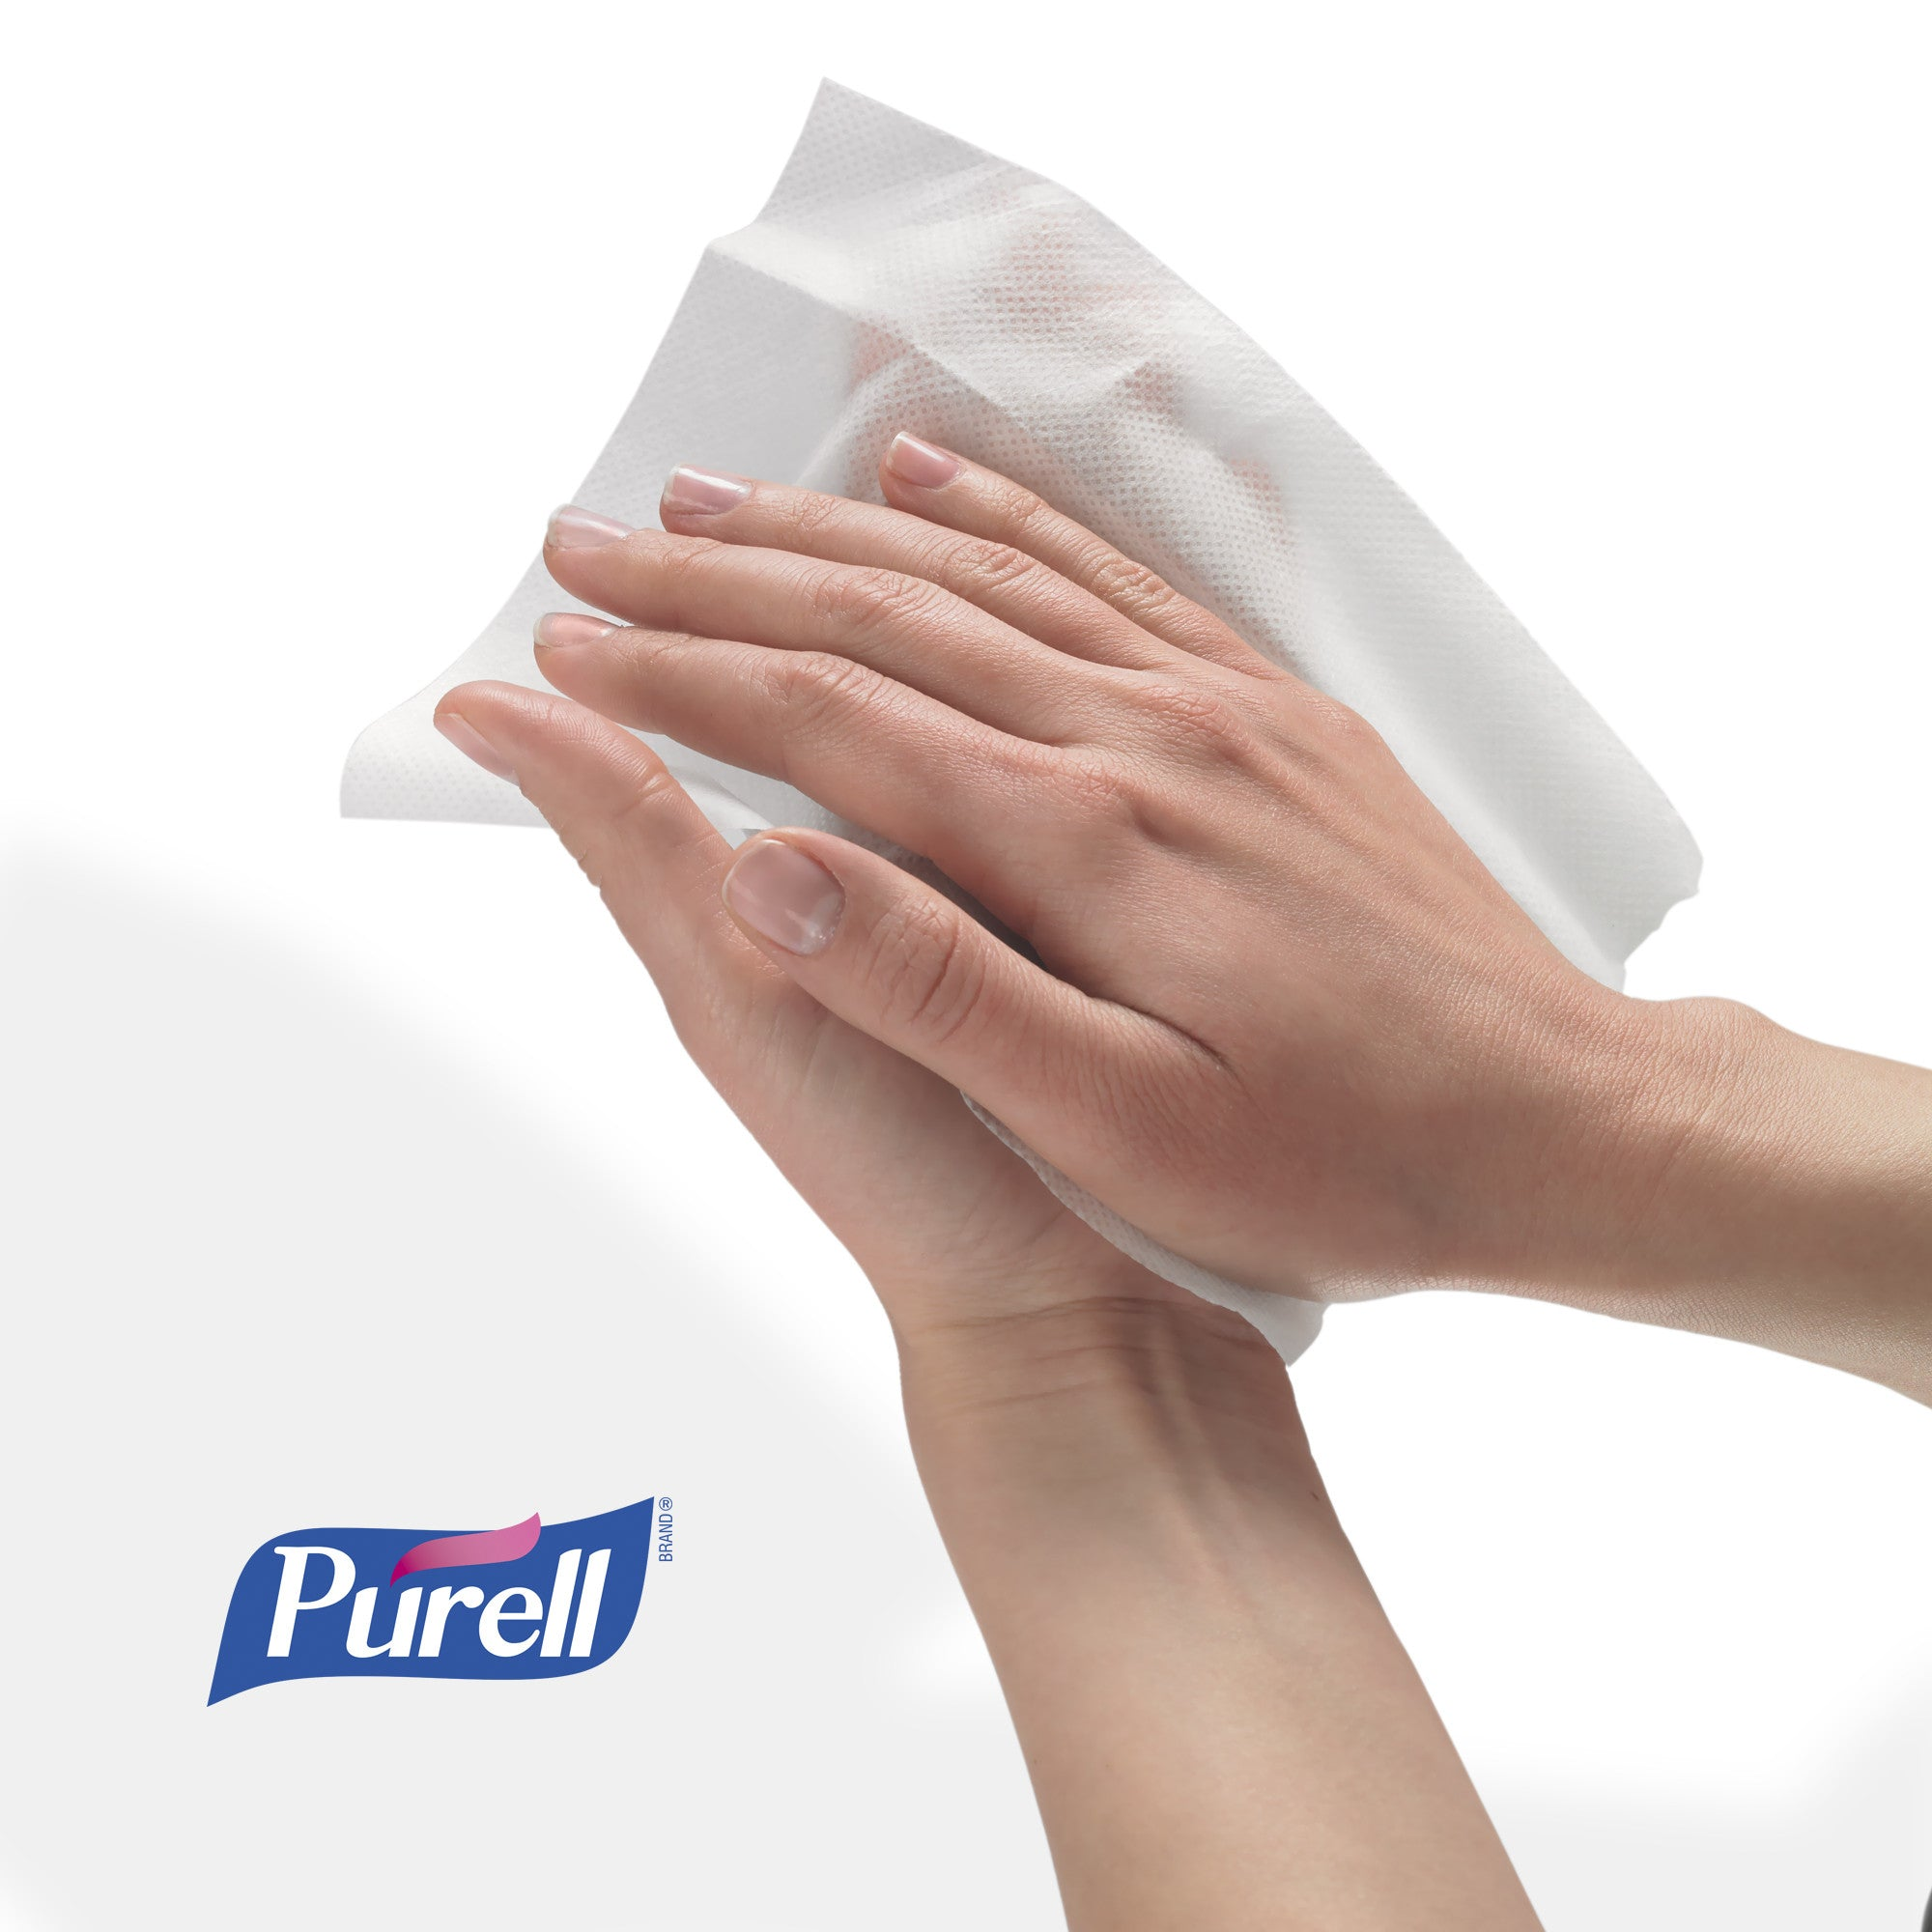 PURELL® Hand Sanitizing Wipes (Non-Alcohol) - 100 Count (Pack of 2)